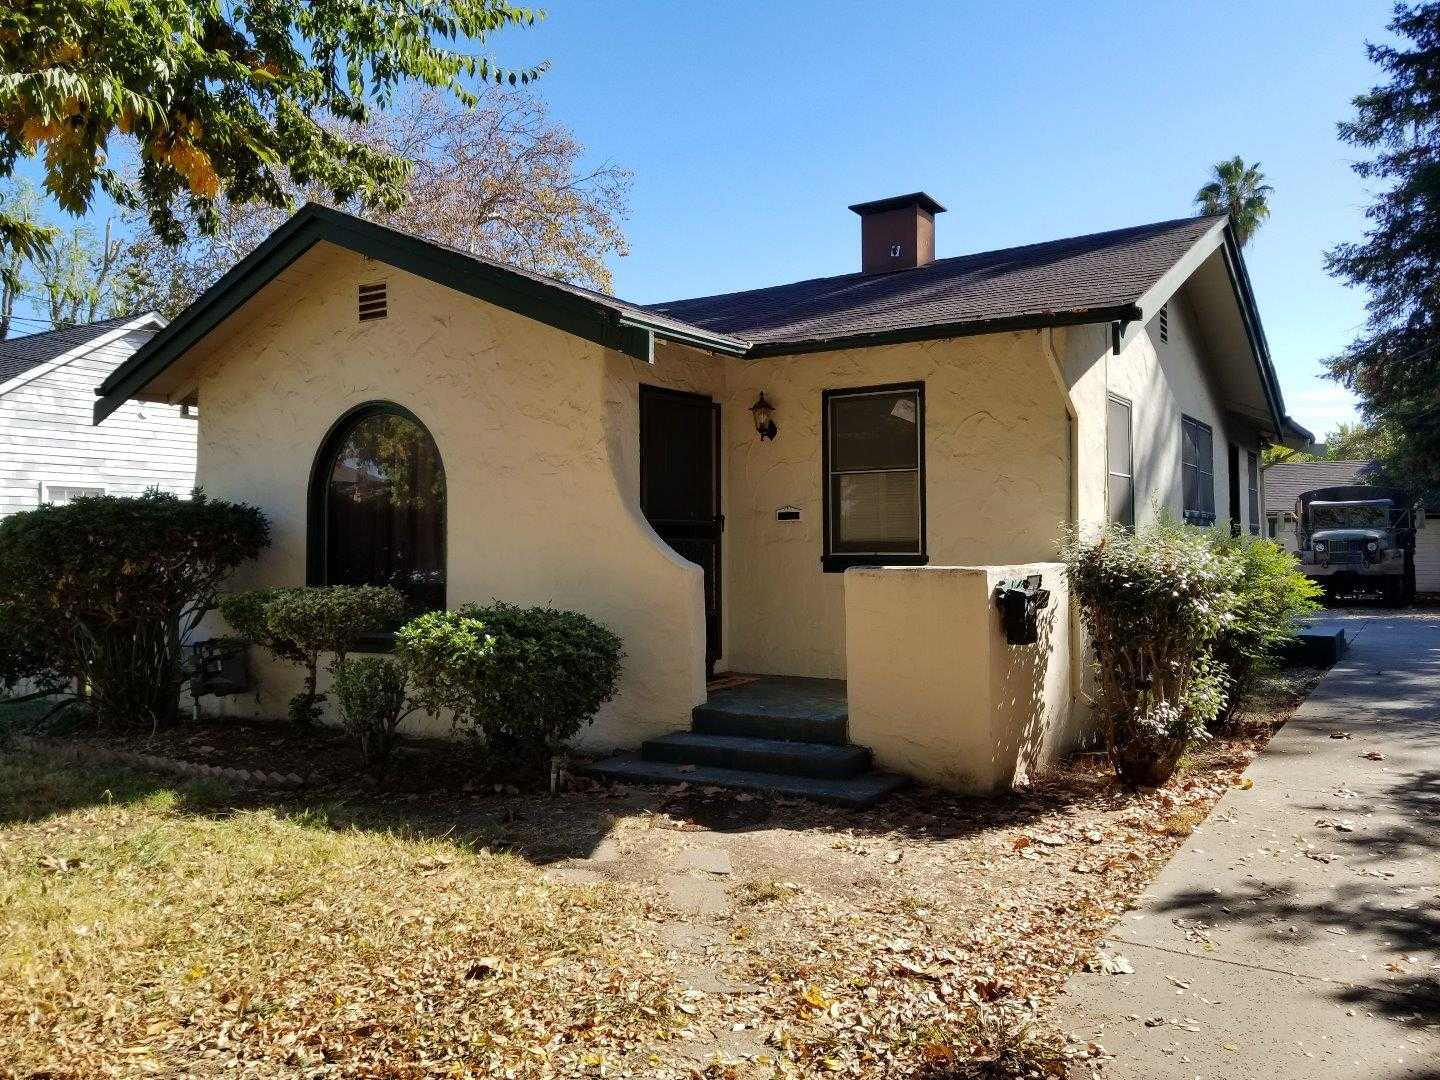 $1,300,000 - 2Br/1Ba -  for Sale in San Jose